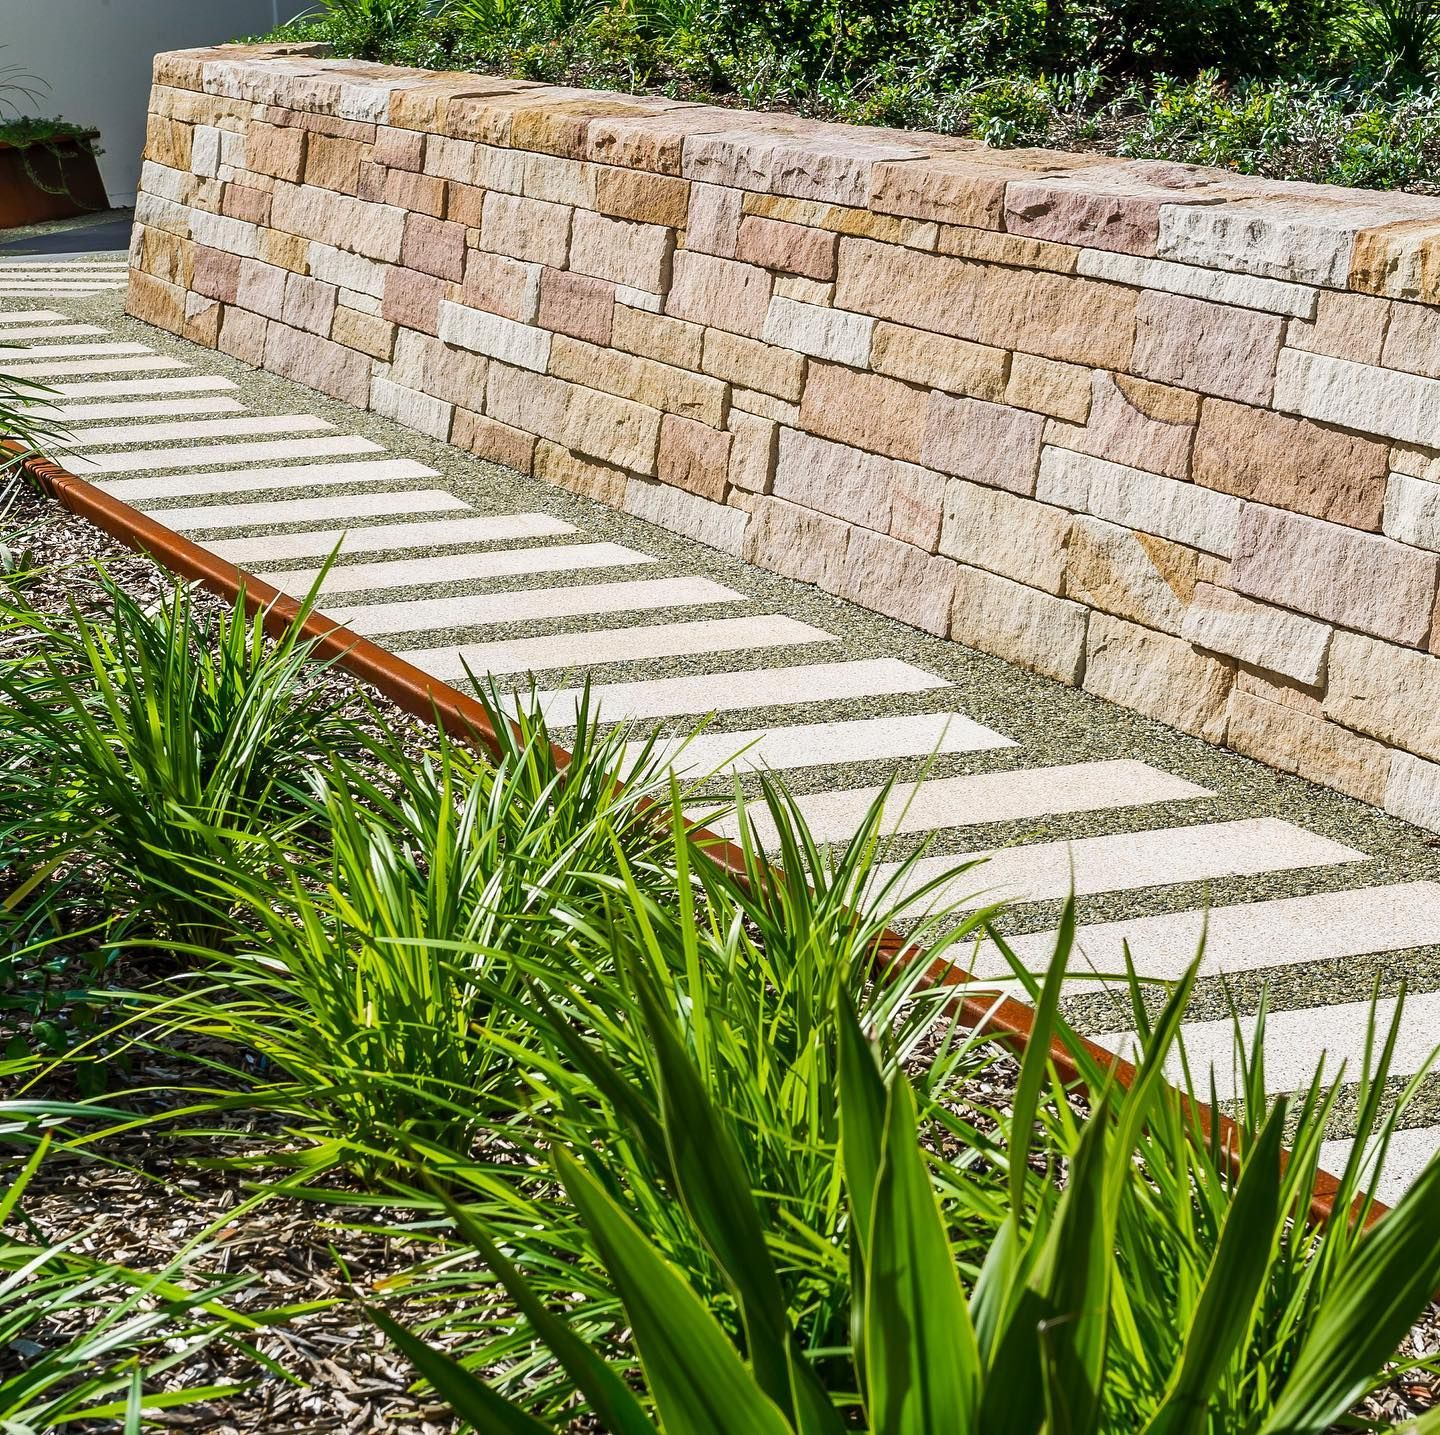 Harold Park Mirvac Custom Honey Jasper Stepping Stones Supply And Installed By Stpm Haroldpark Mirvac Sto In 2020 With Images Paving Stones Landscape Design Stepping Stones